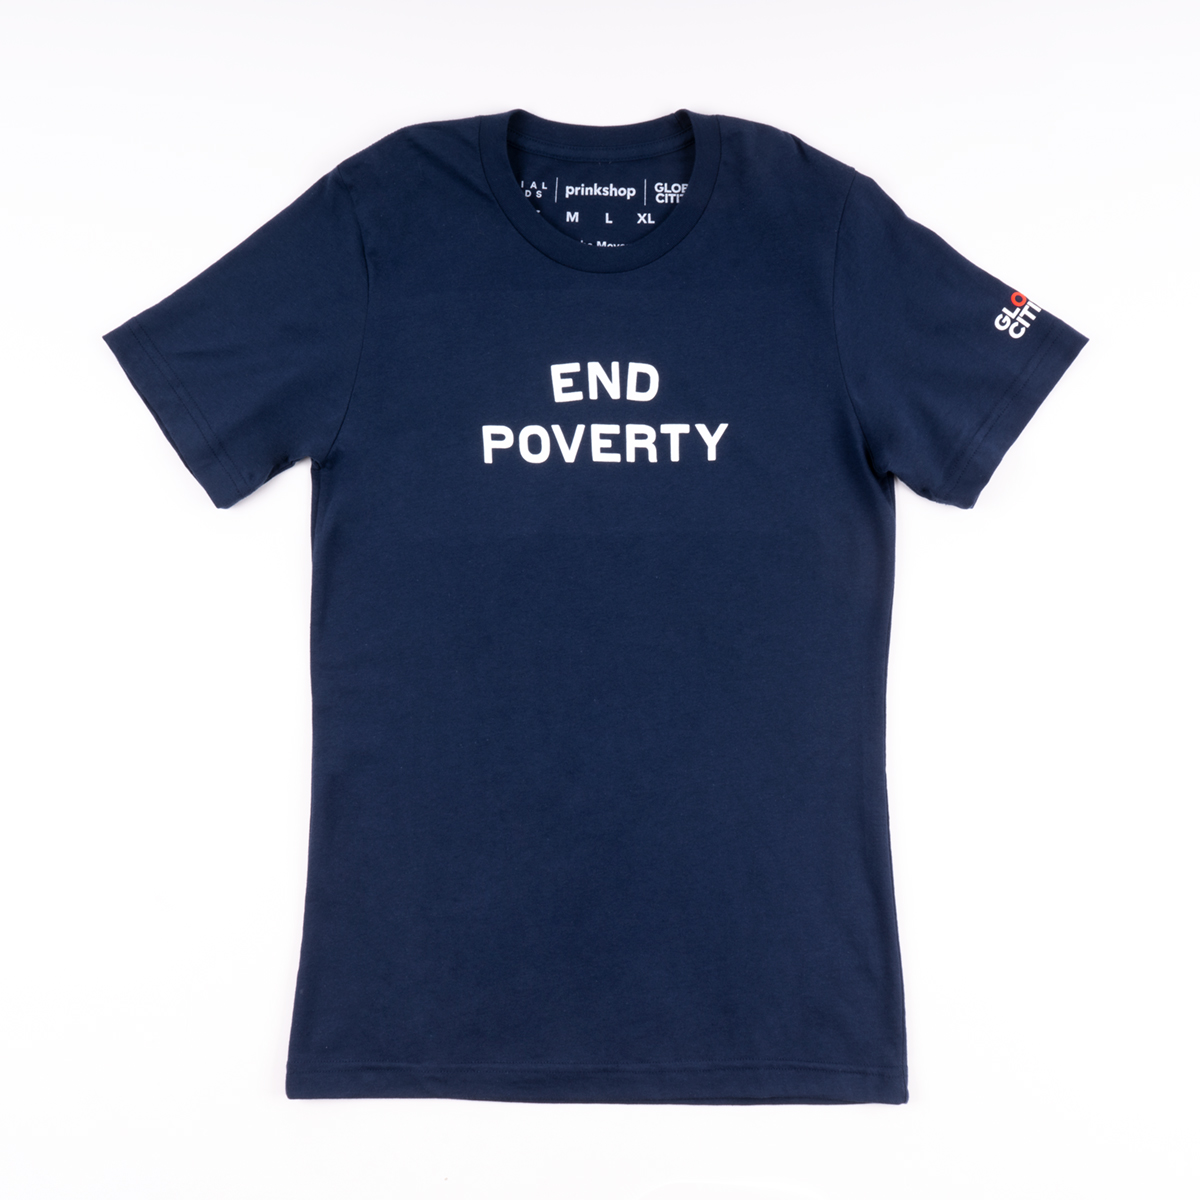 Global Citizen Social Goods End Poverty T-shirt